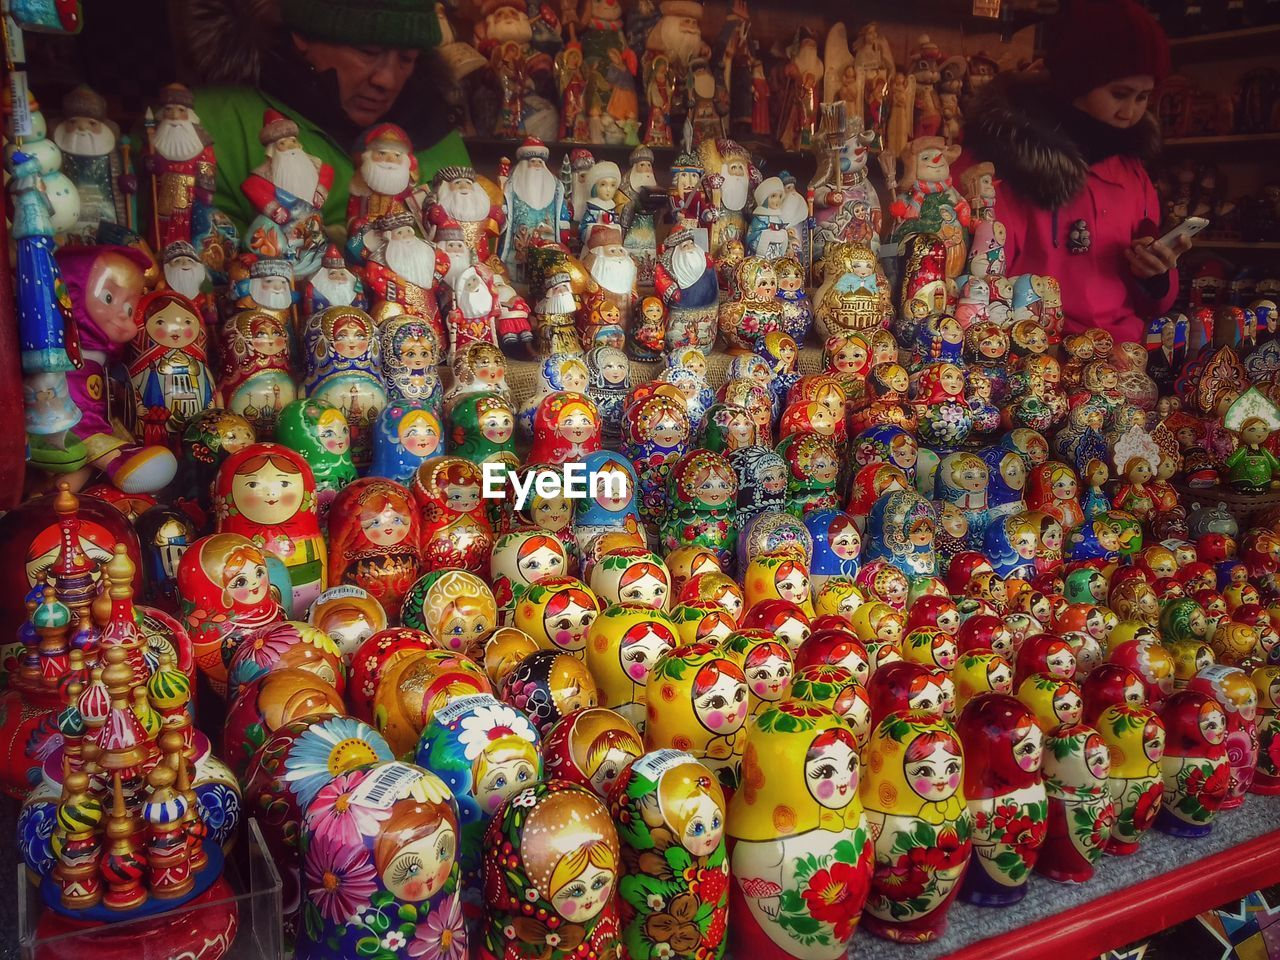 for sale, large group of objects, variation, retail, multi colored, choice, abundance, art and craft, collection, market, market stall, arrangement, indoors, store, no people, day, close-up